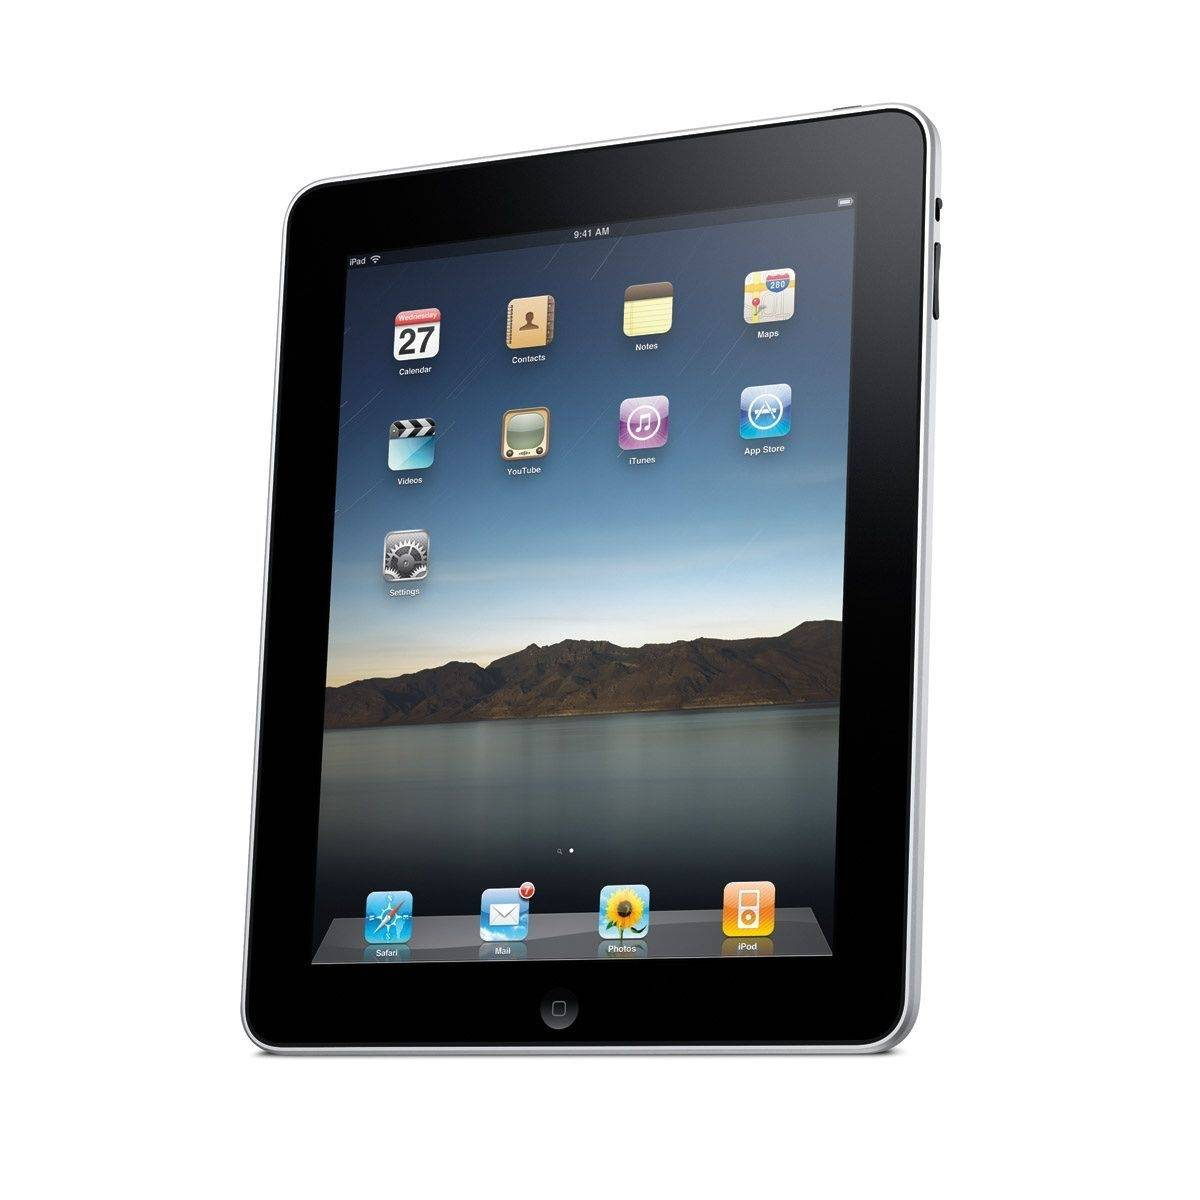 Apple Inc. said Monday that it delivered more than 300,000 iPads on its opening day.